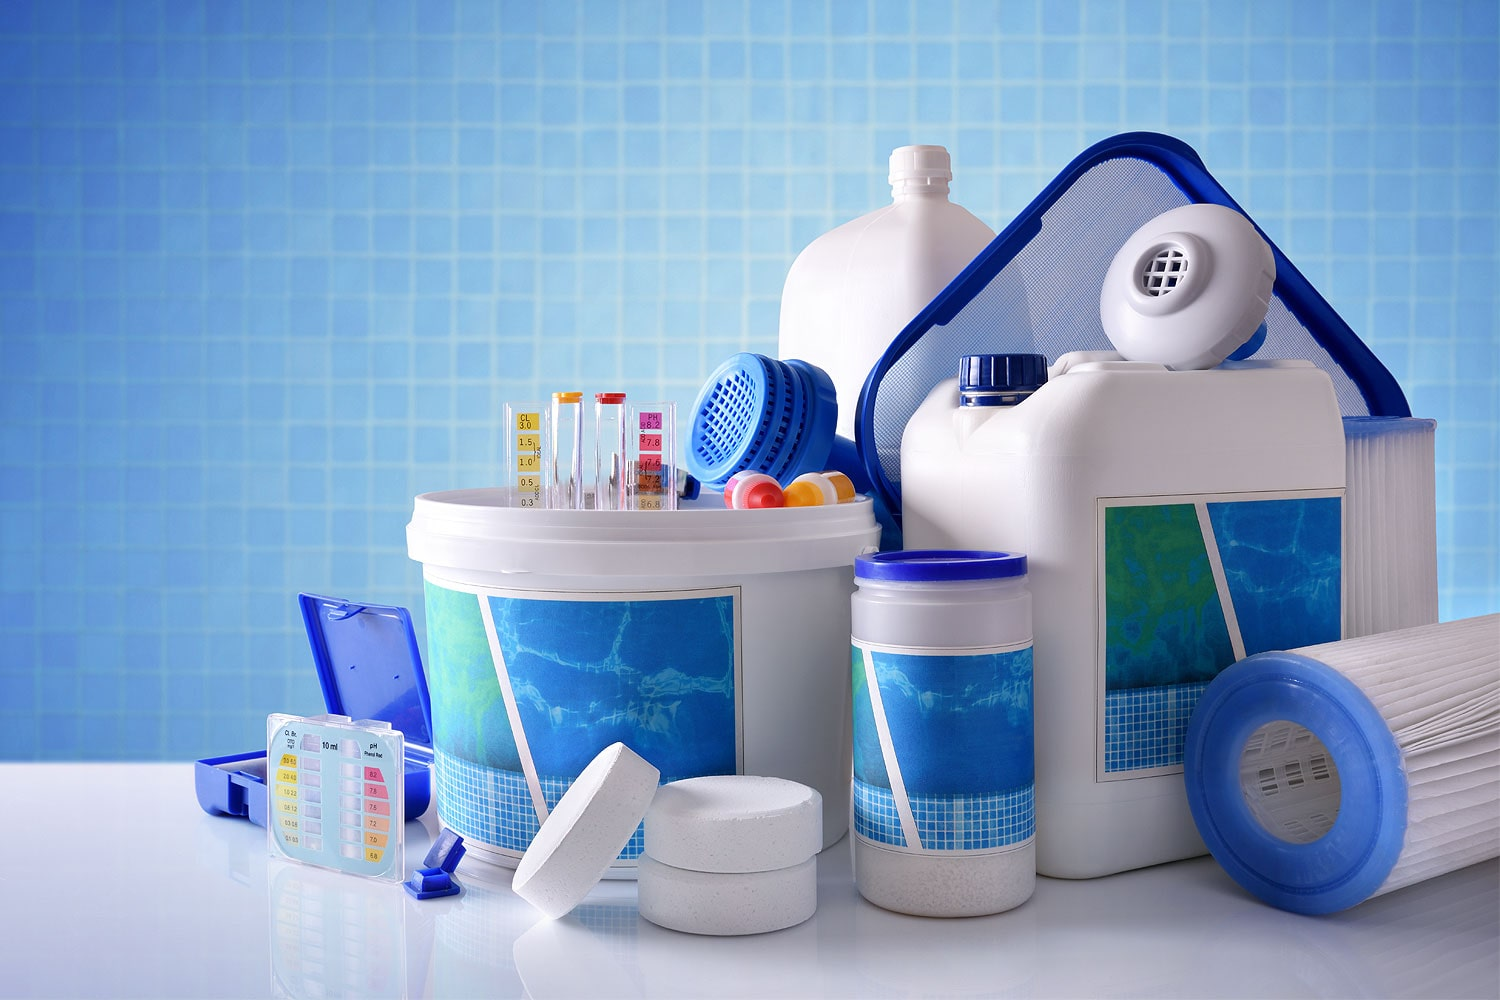 Storing Pool Chemicals Image